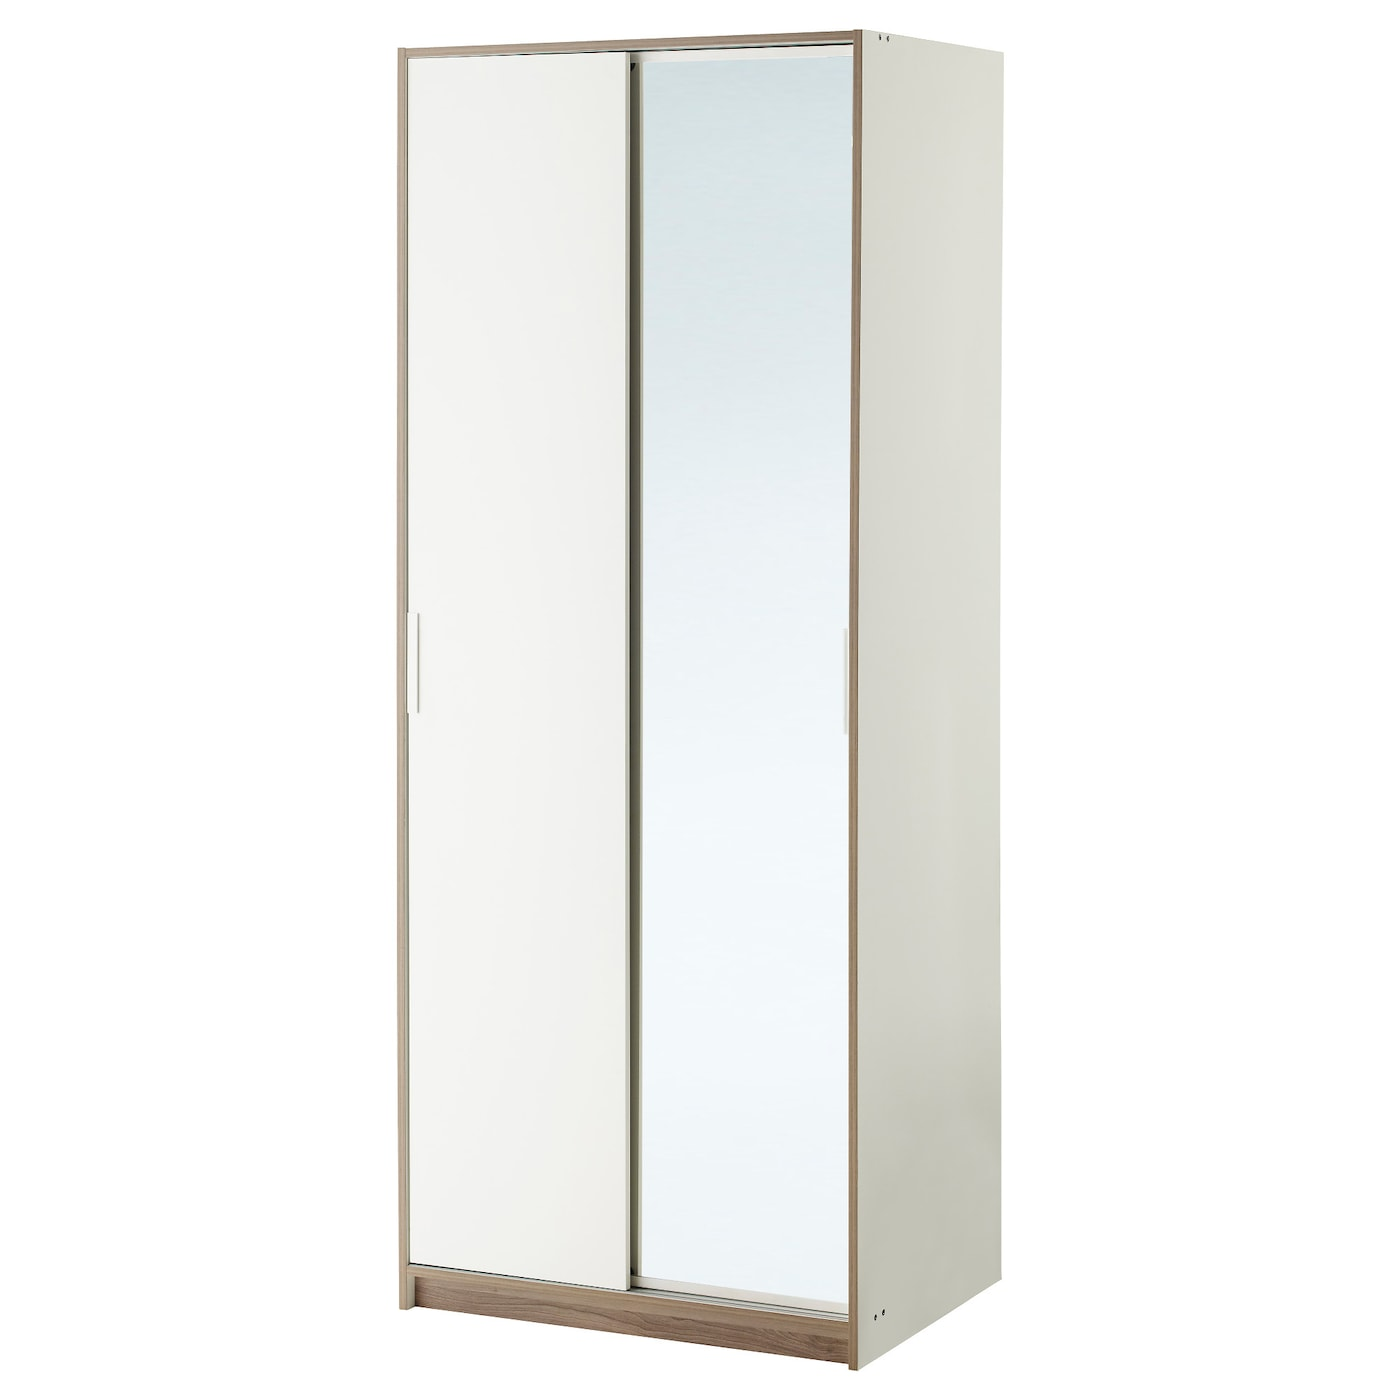 trysil armoire penderie blanc miroir 79x61x202 cm ikea. Black Bedroom Furniture Sets. Home Design Ideas